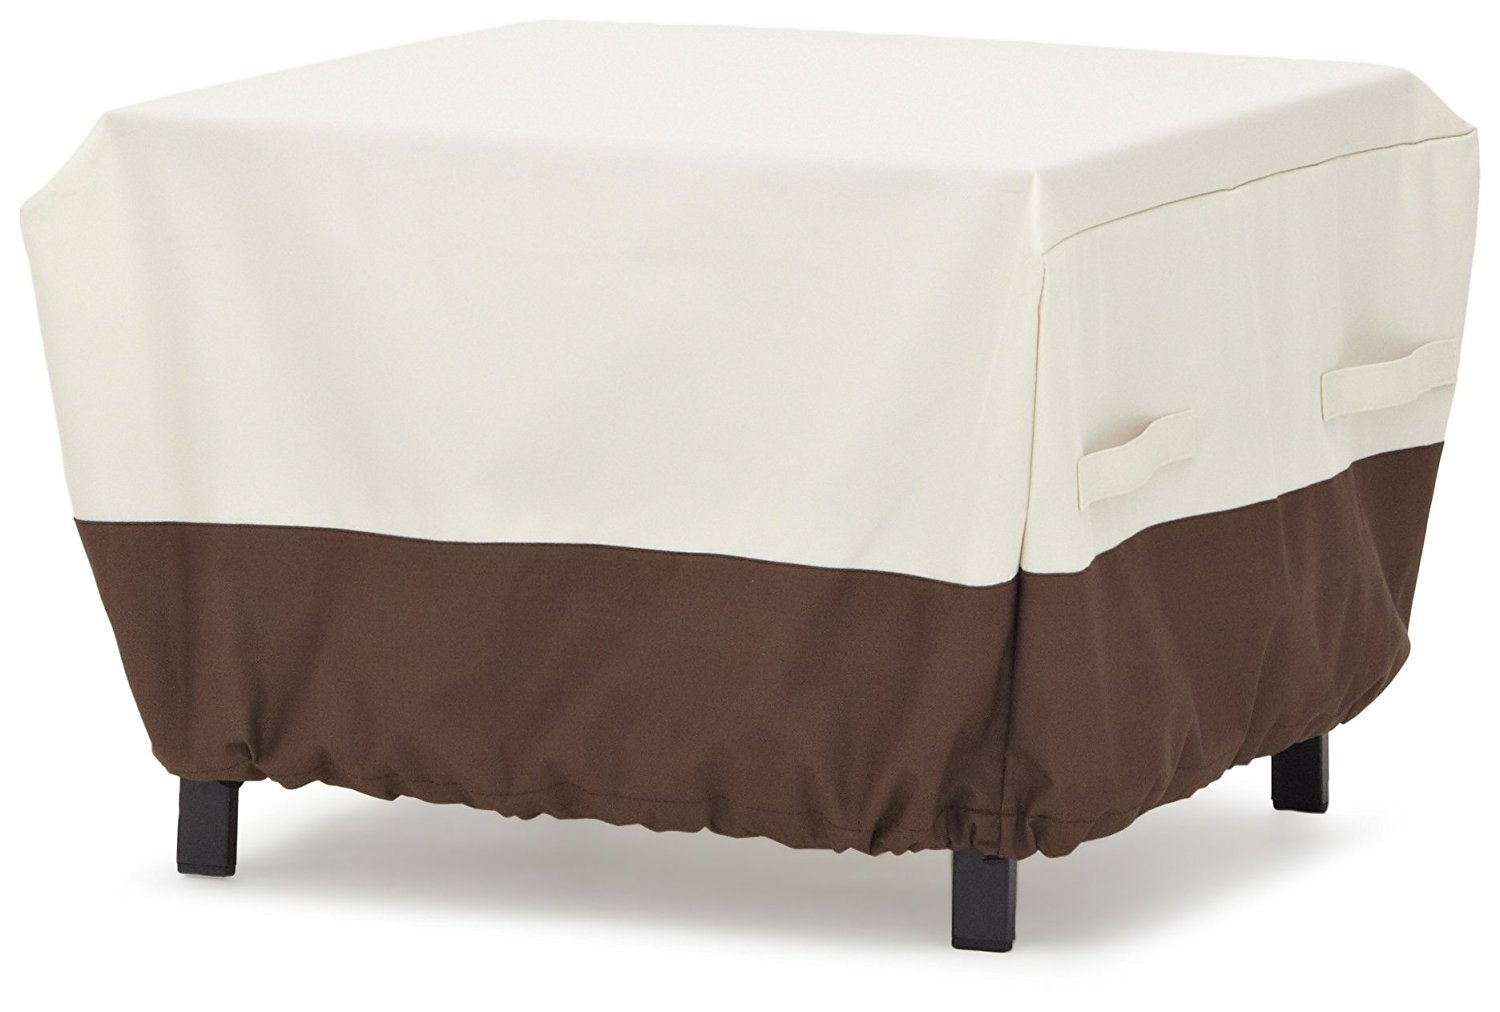 AmazonBasics Ottoman Patio Cover